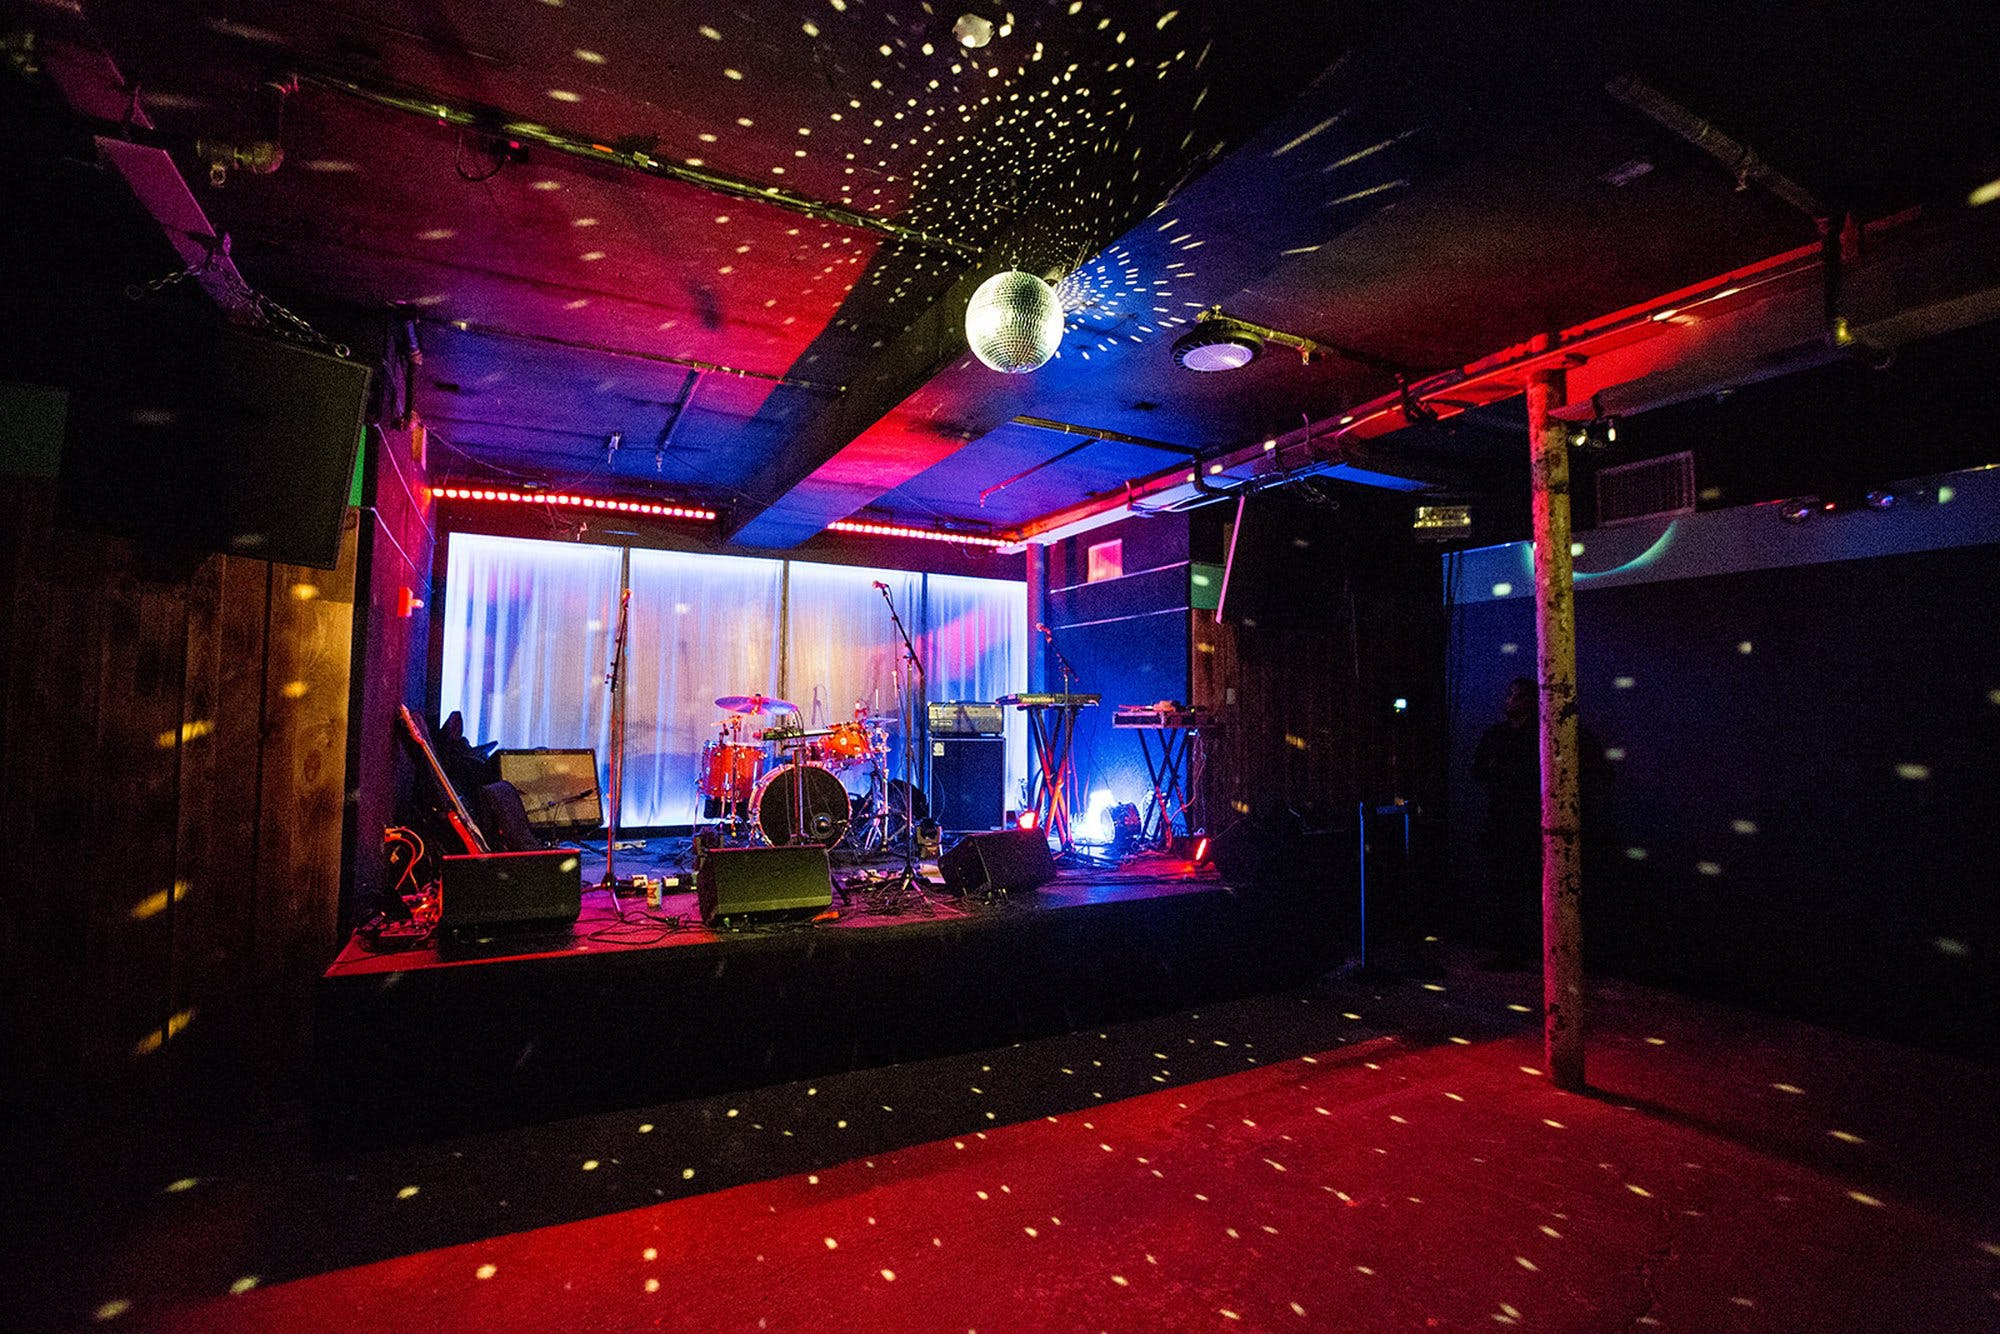 A room at the venue Elsewhere with instruments set up on stage and a disco ball shining